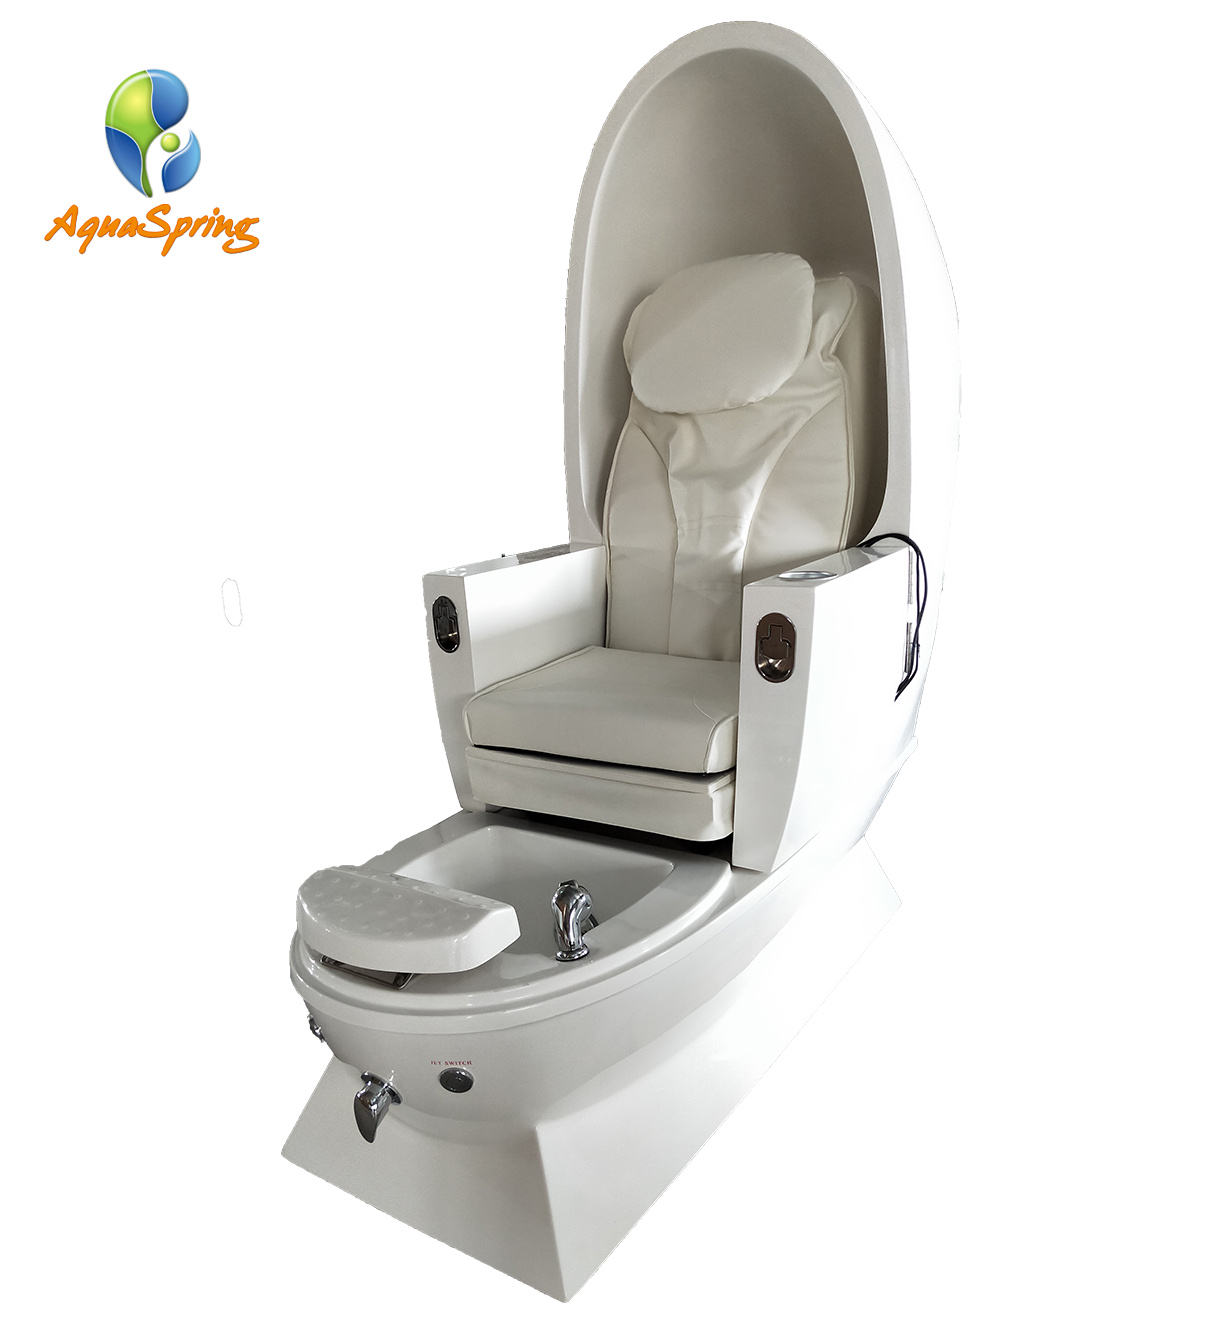 Modern tufted Foot Spa Chair Luxury Massage Beauty Salon Furniture Pedicure Chair